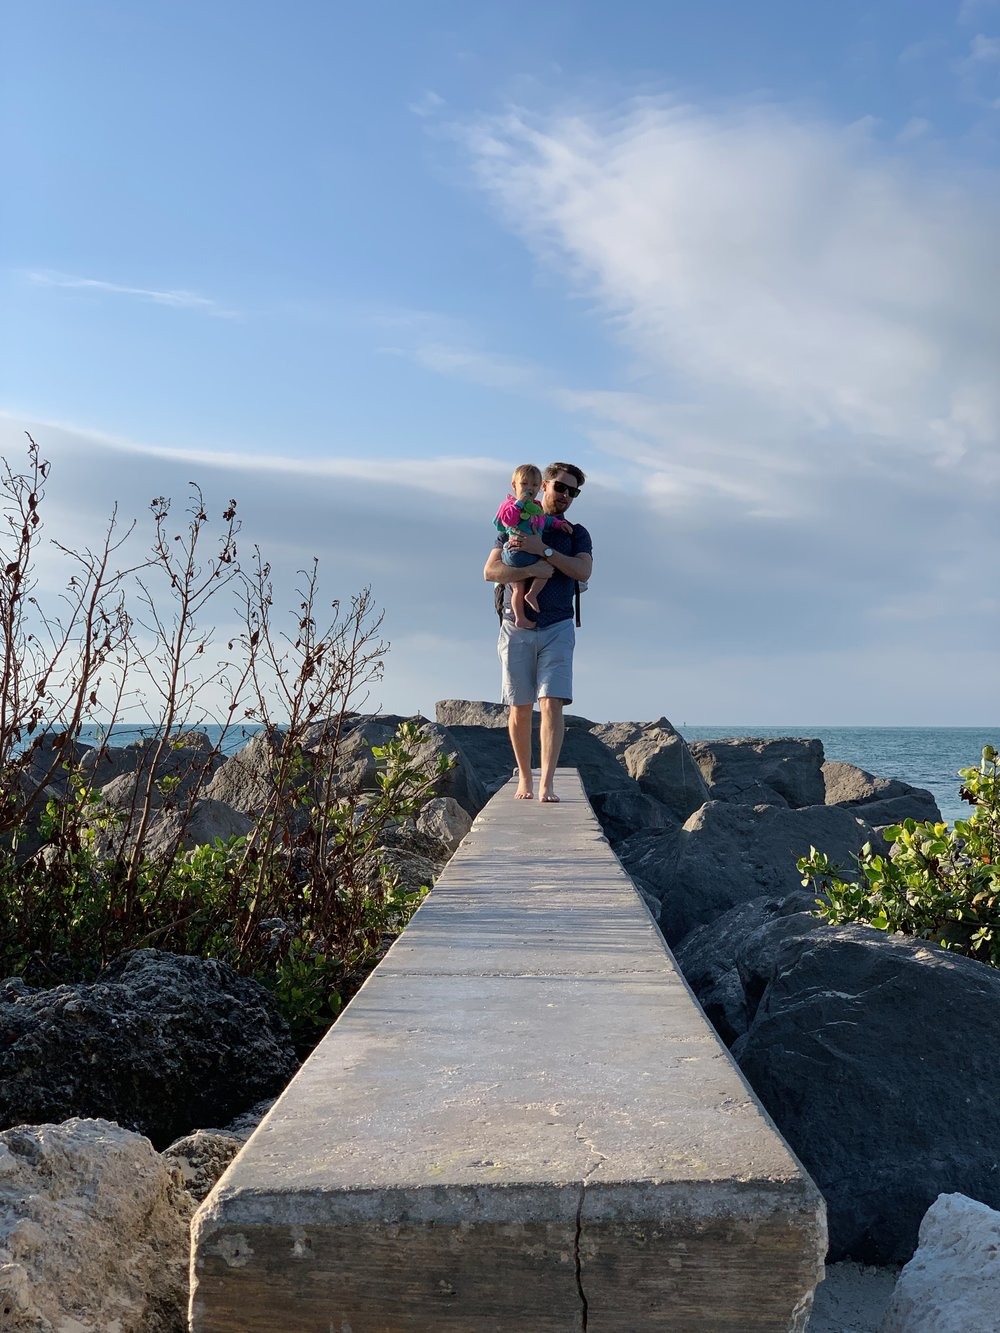 Fort Zachary Taylor Park Beach | Key West Florida | Traveling with a toddler | kid friendly | By Sarah Rae